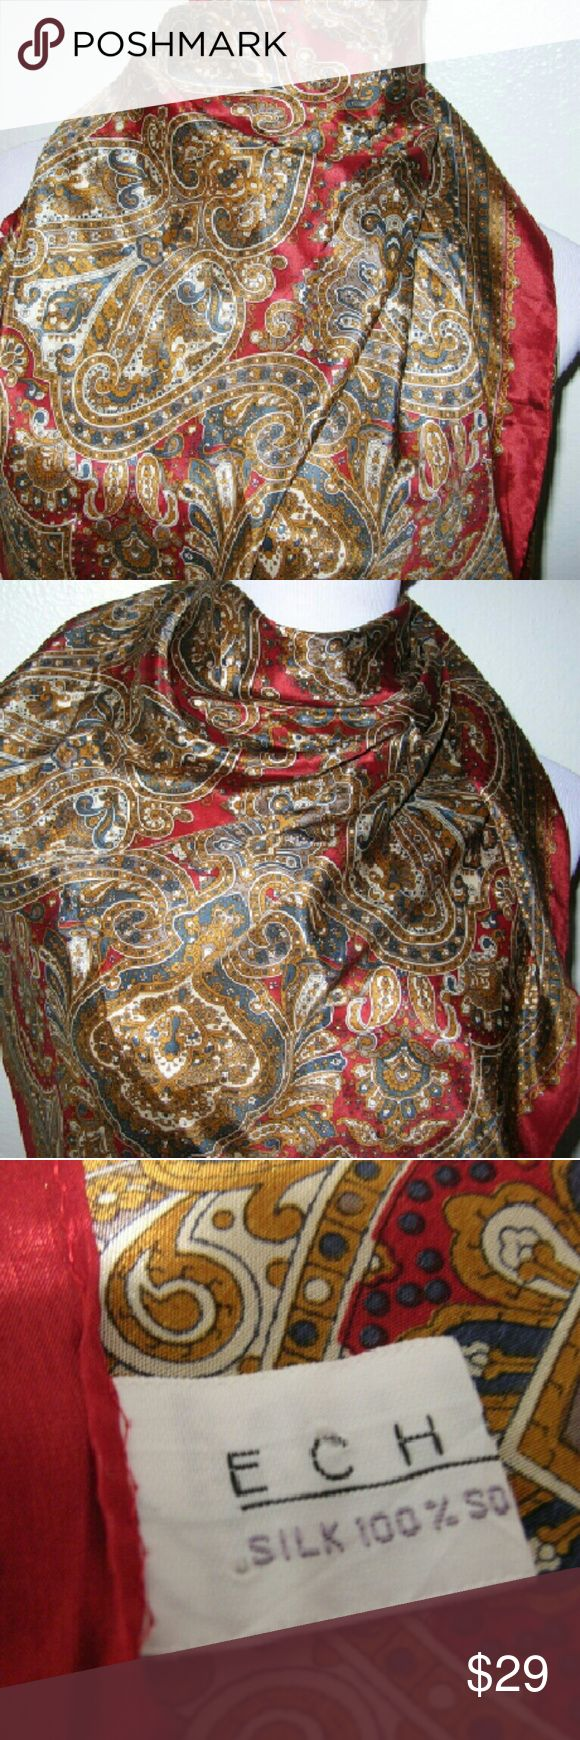 ECHO Japan vintage silk scarf square awesome! The finest silk ever! Impeccable condition ECHO Accessories Scarves & Wraps